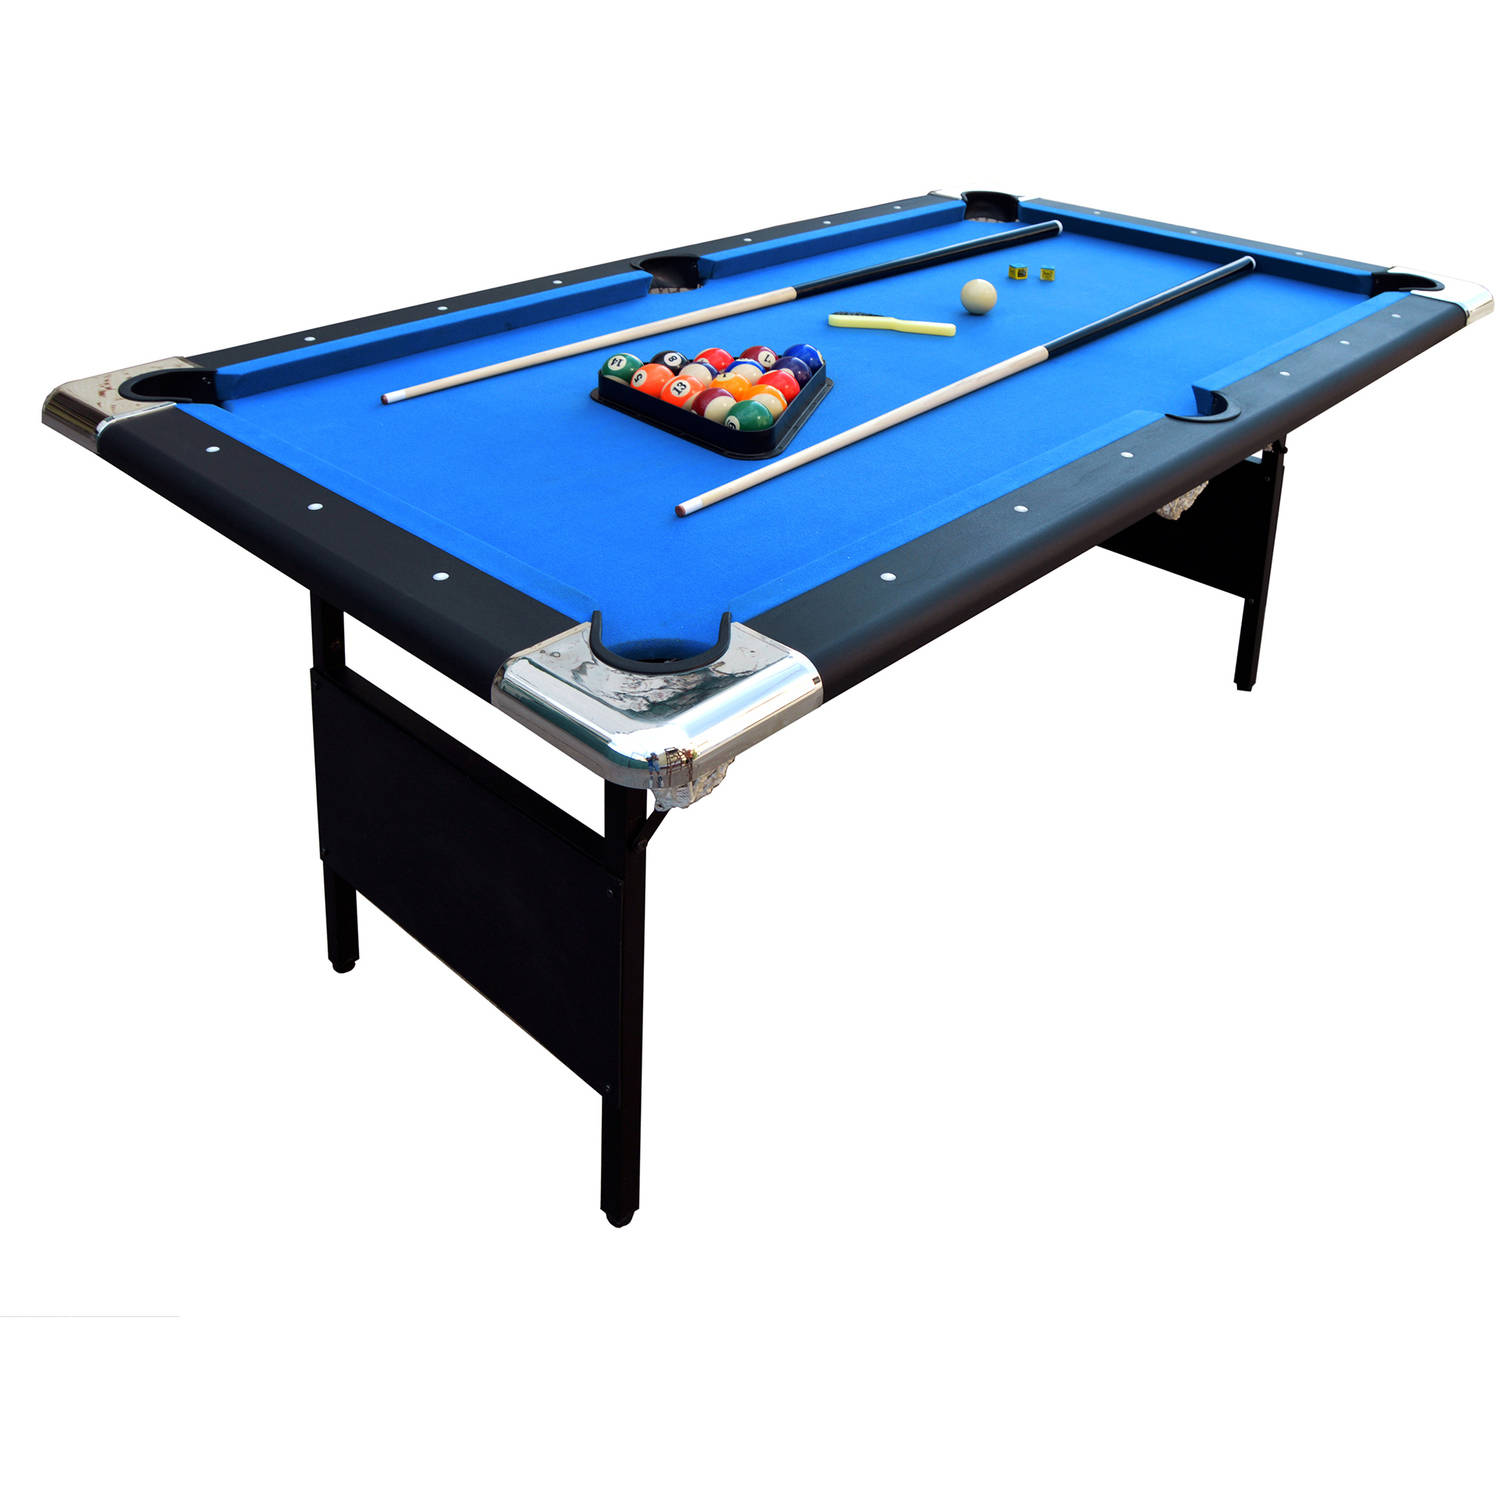 Folding legs pool table for sale - Folding Legs Pool Table For Sale 6